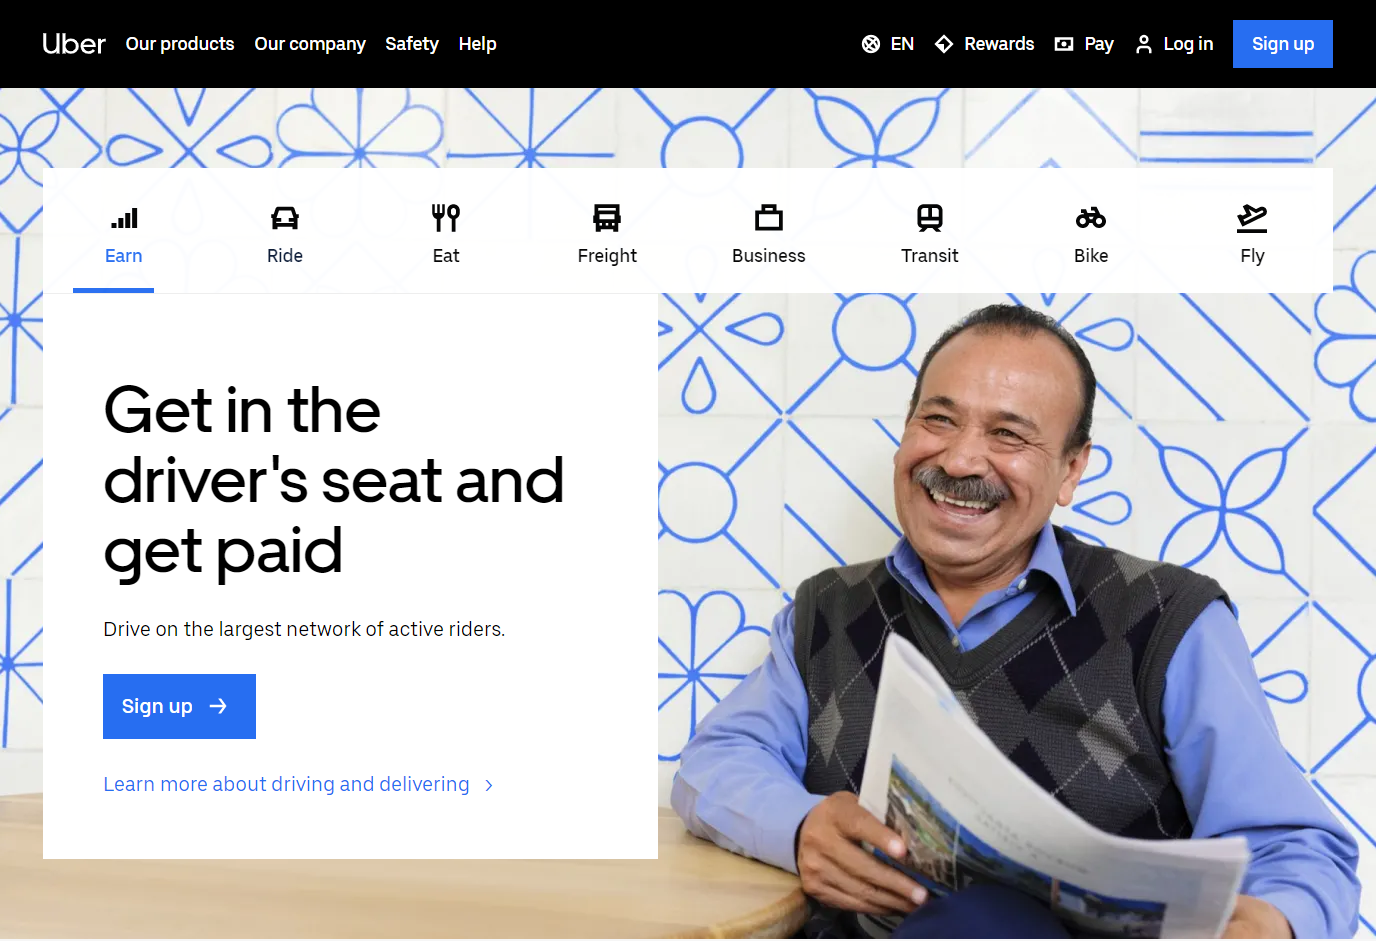 landing page example of uber